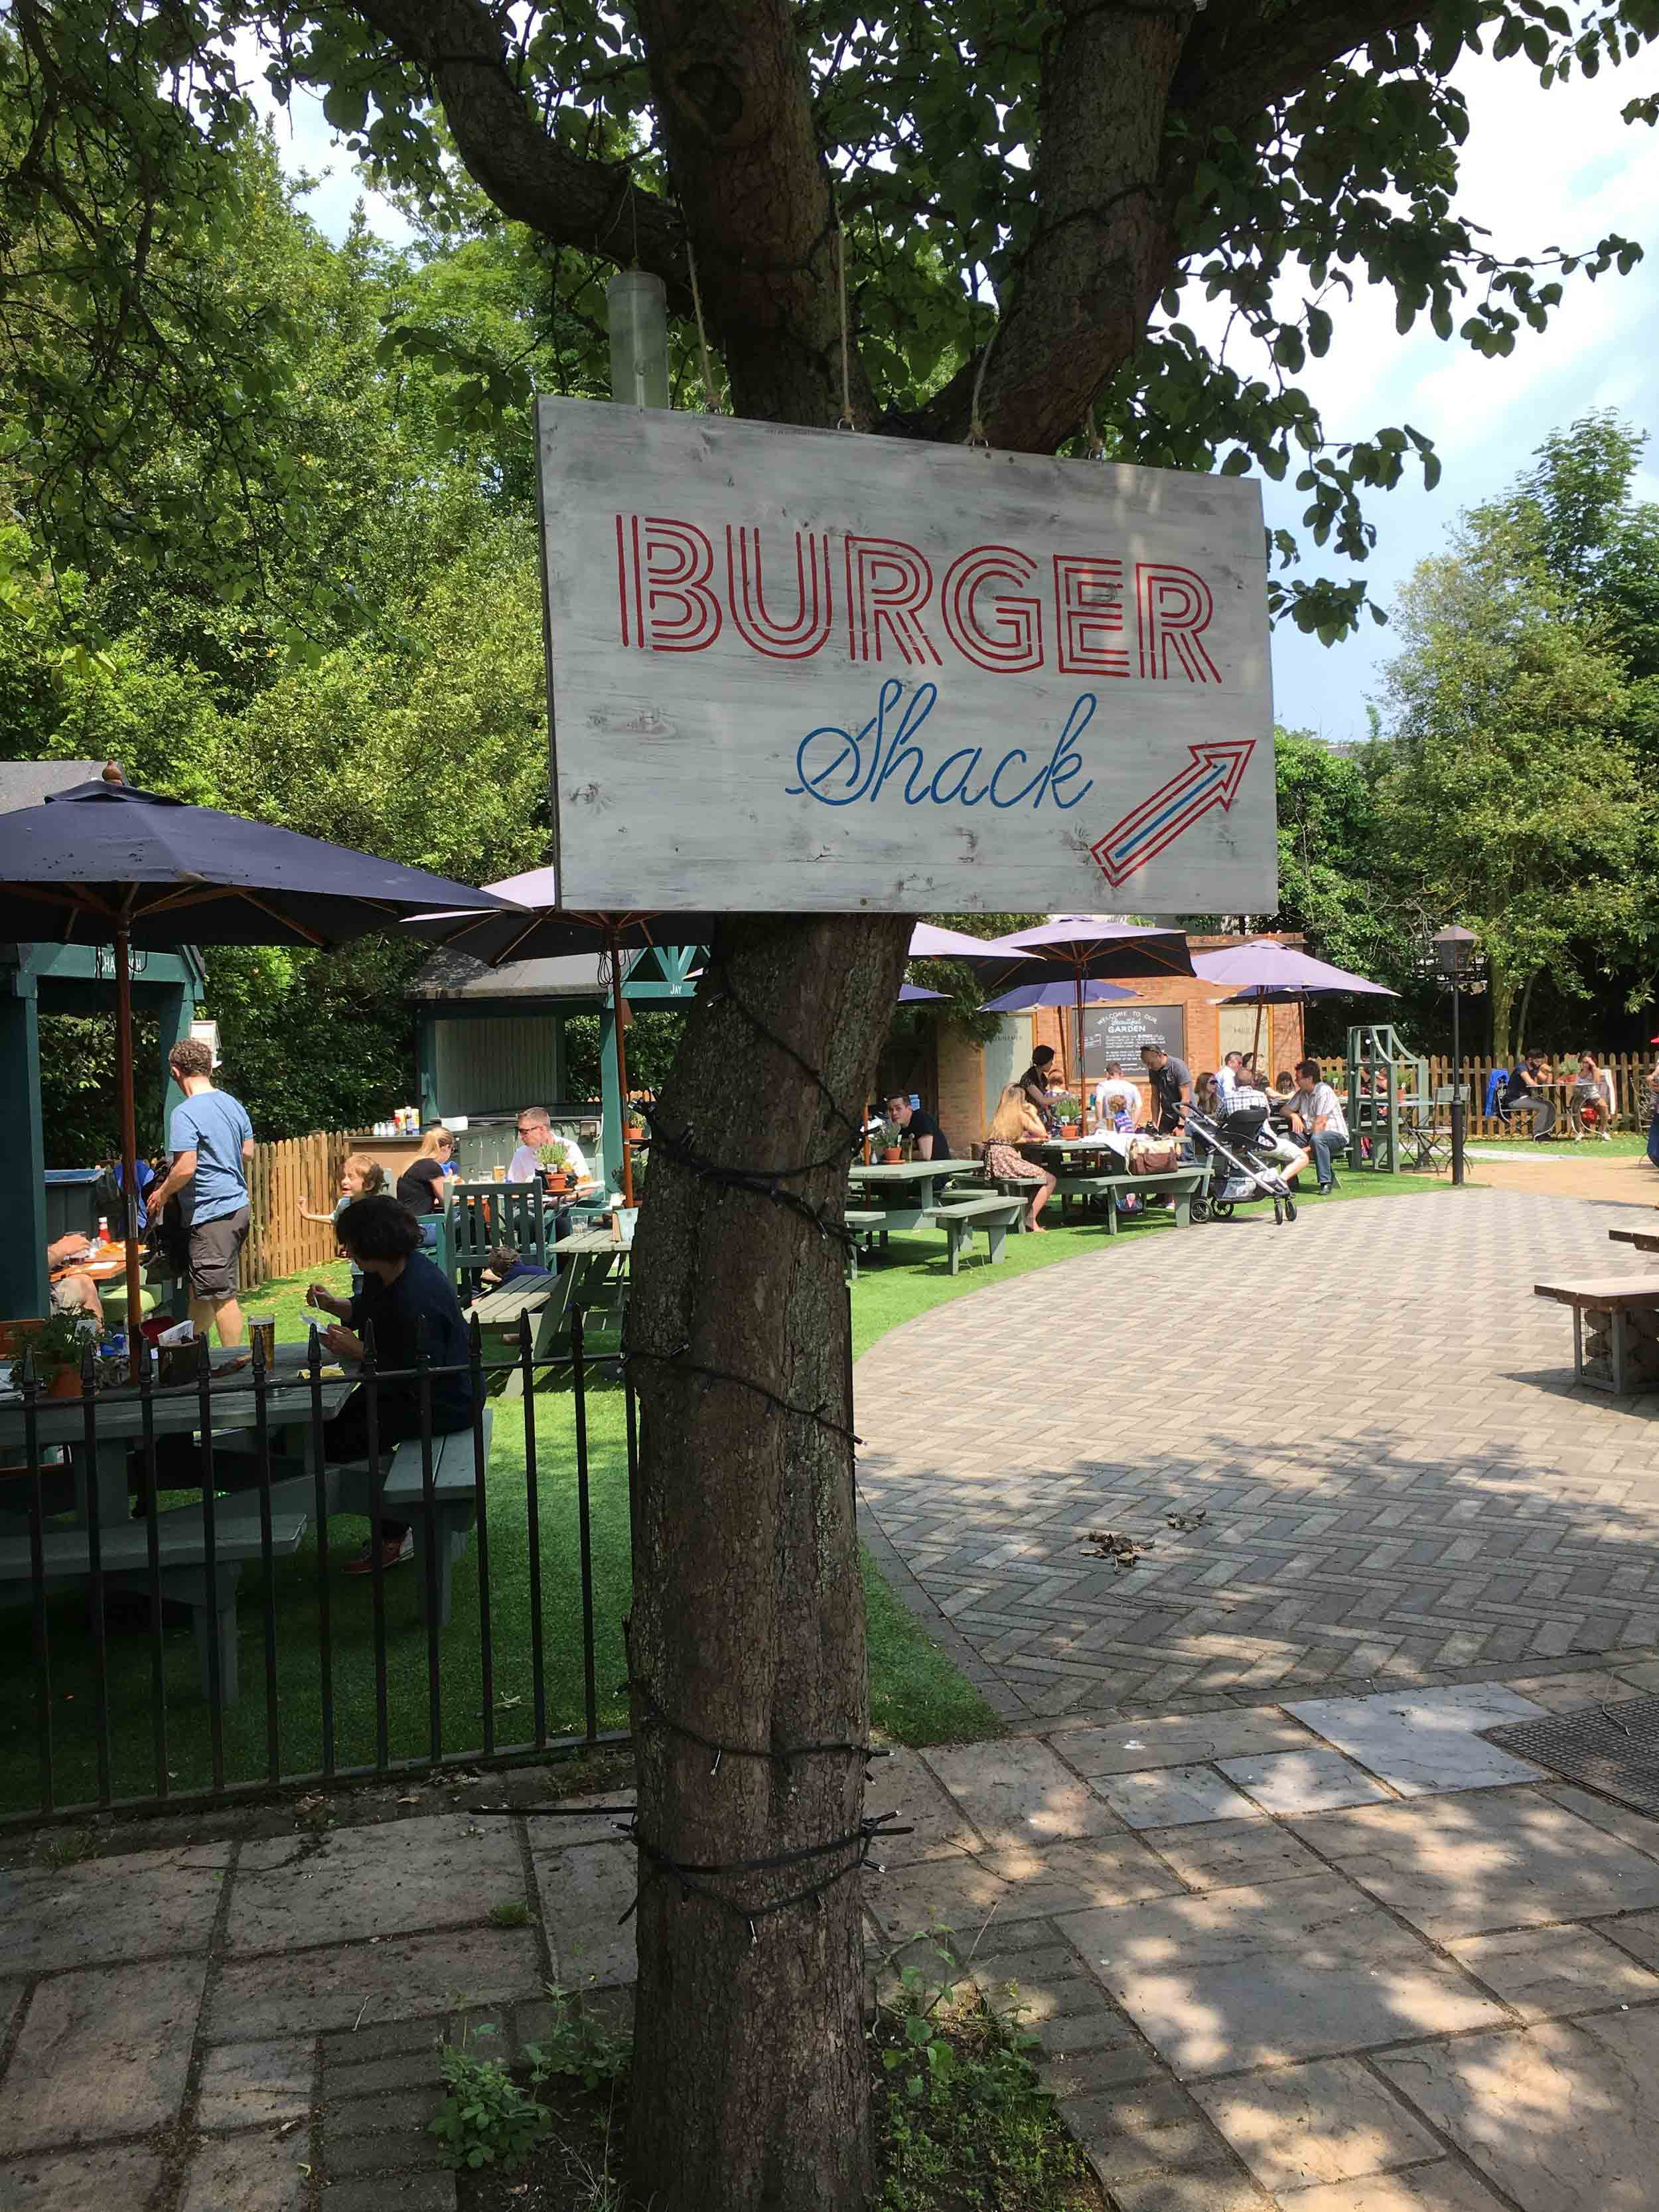 The Burger Shack at the Wood House do a great burger and the beer garden is really nice.